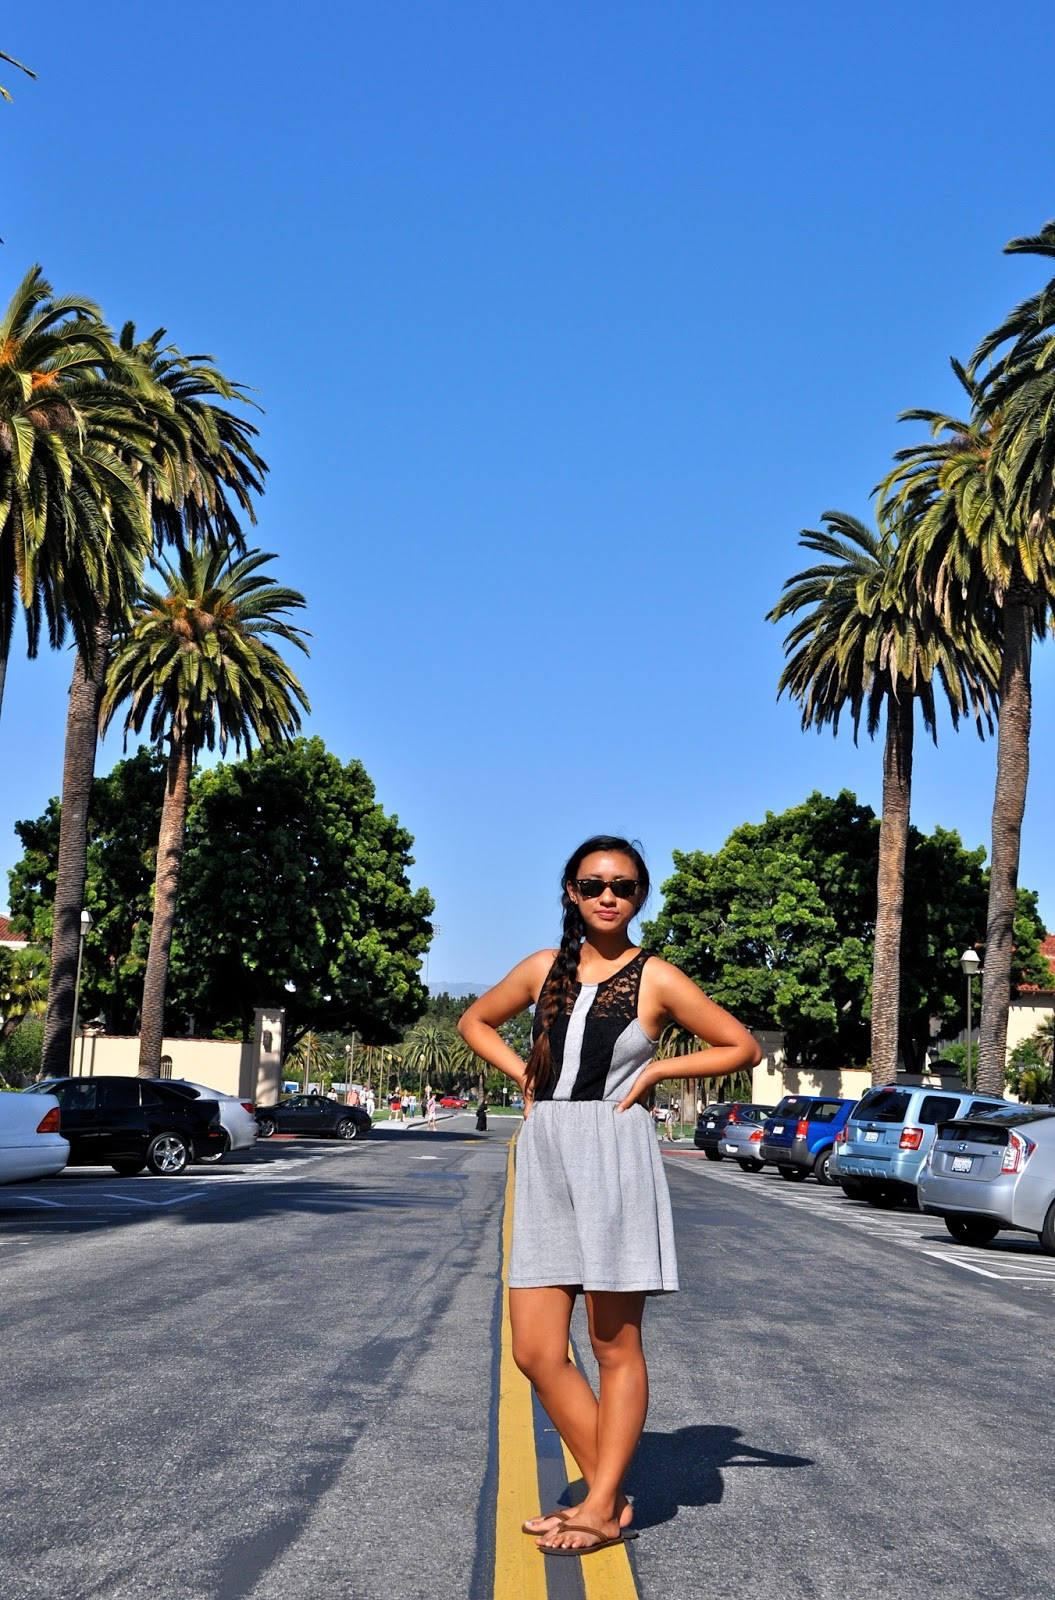 Anjelica, a Santa Clara University  student, sporting a grey herringbone dress with a black lace racerback and wearing her hair in a side ponytail